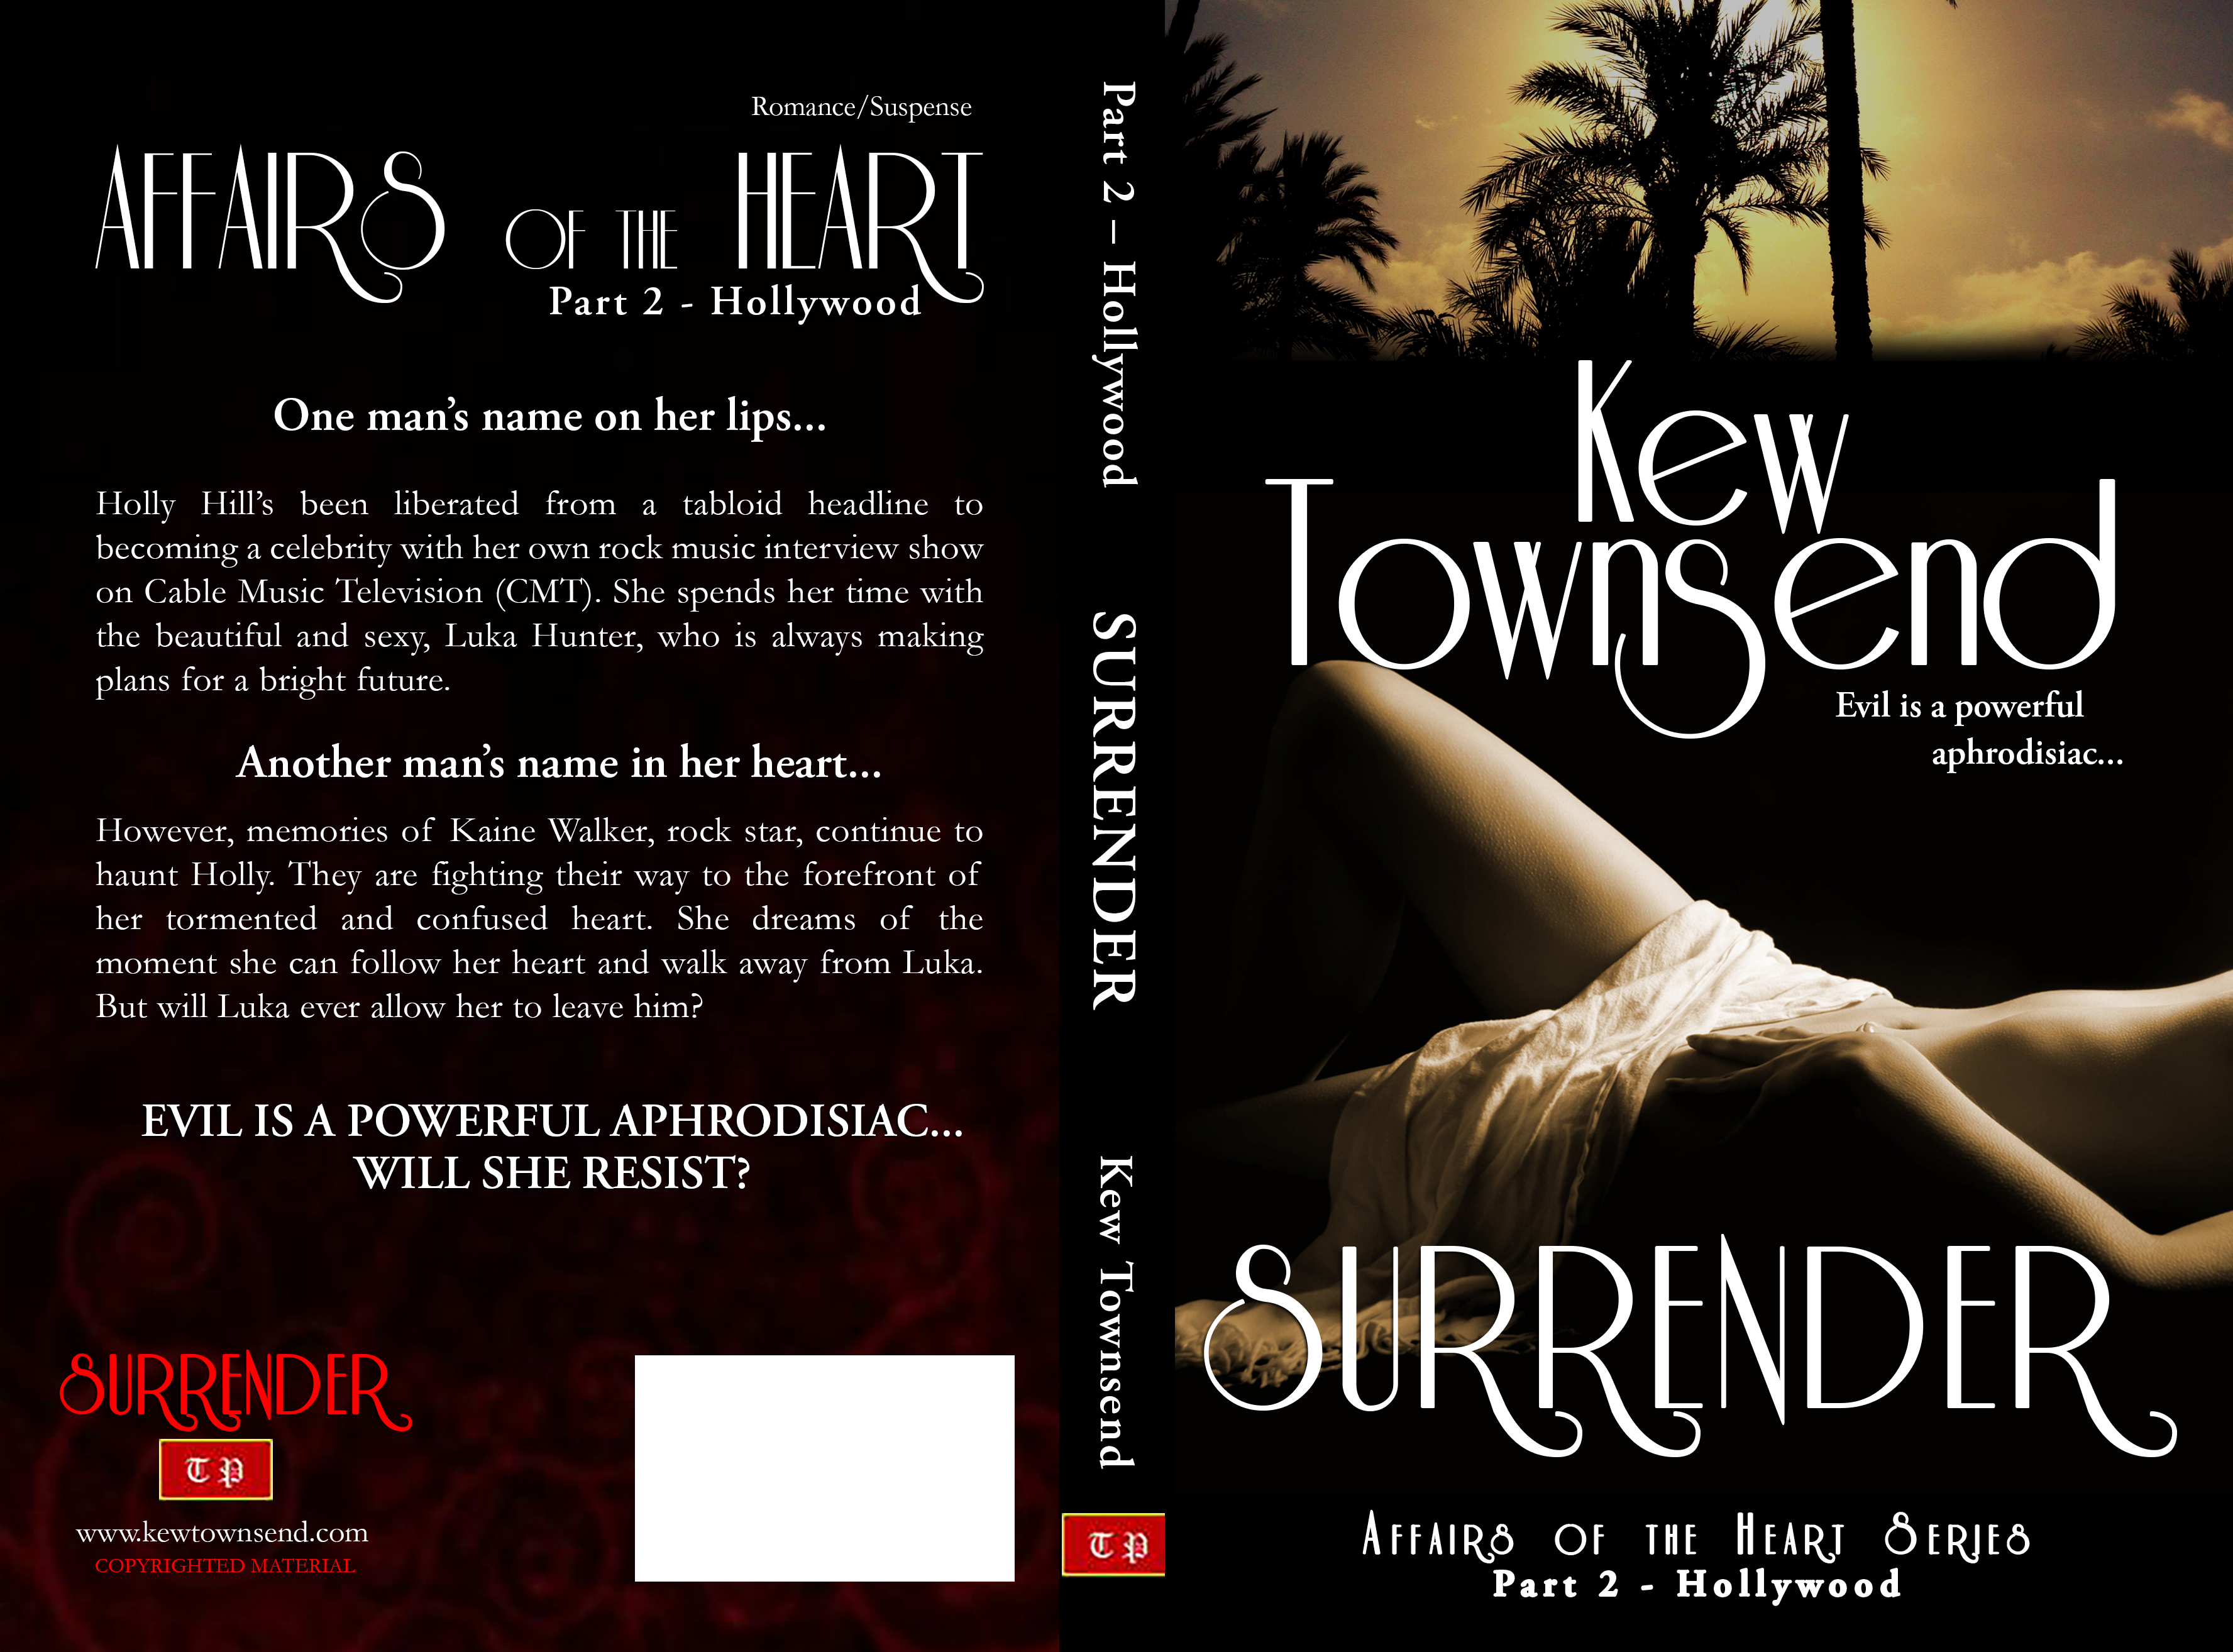 SURRENDER Print Cover by Kew Townsend